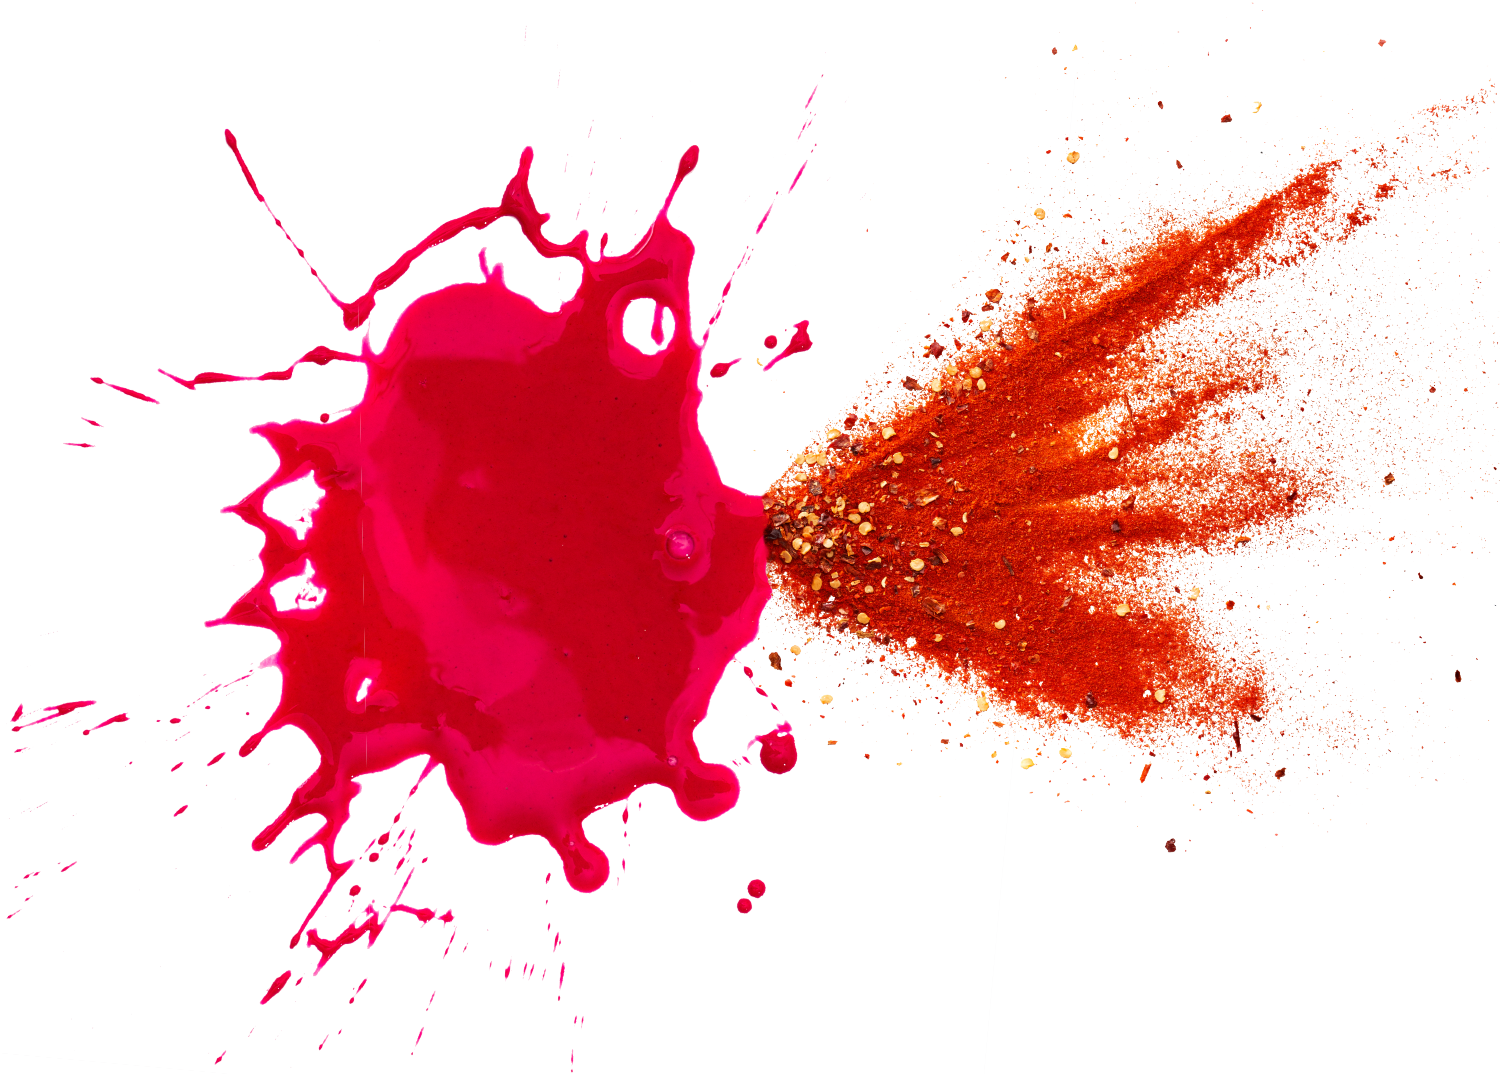 Splash of red and pink paint on the left side and splash of red pepper spice on the right side.